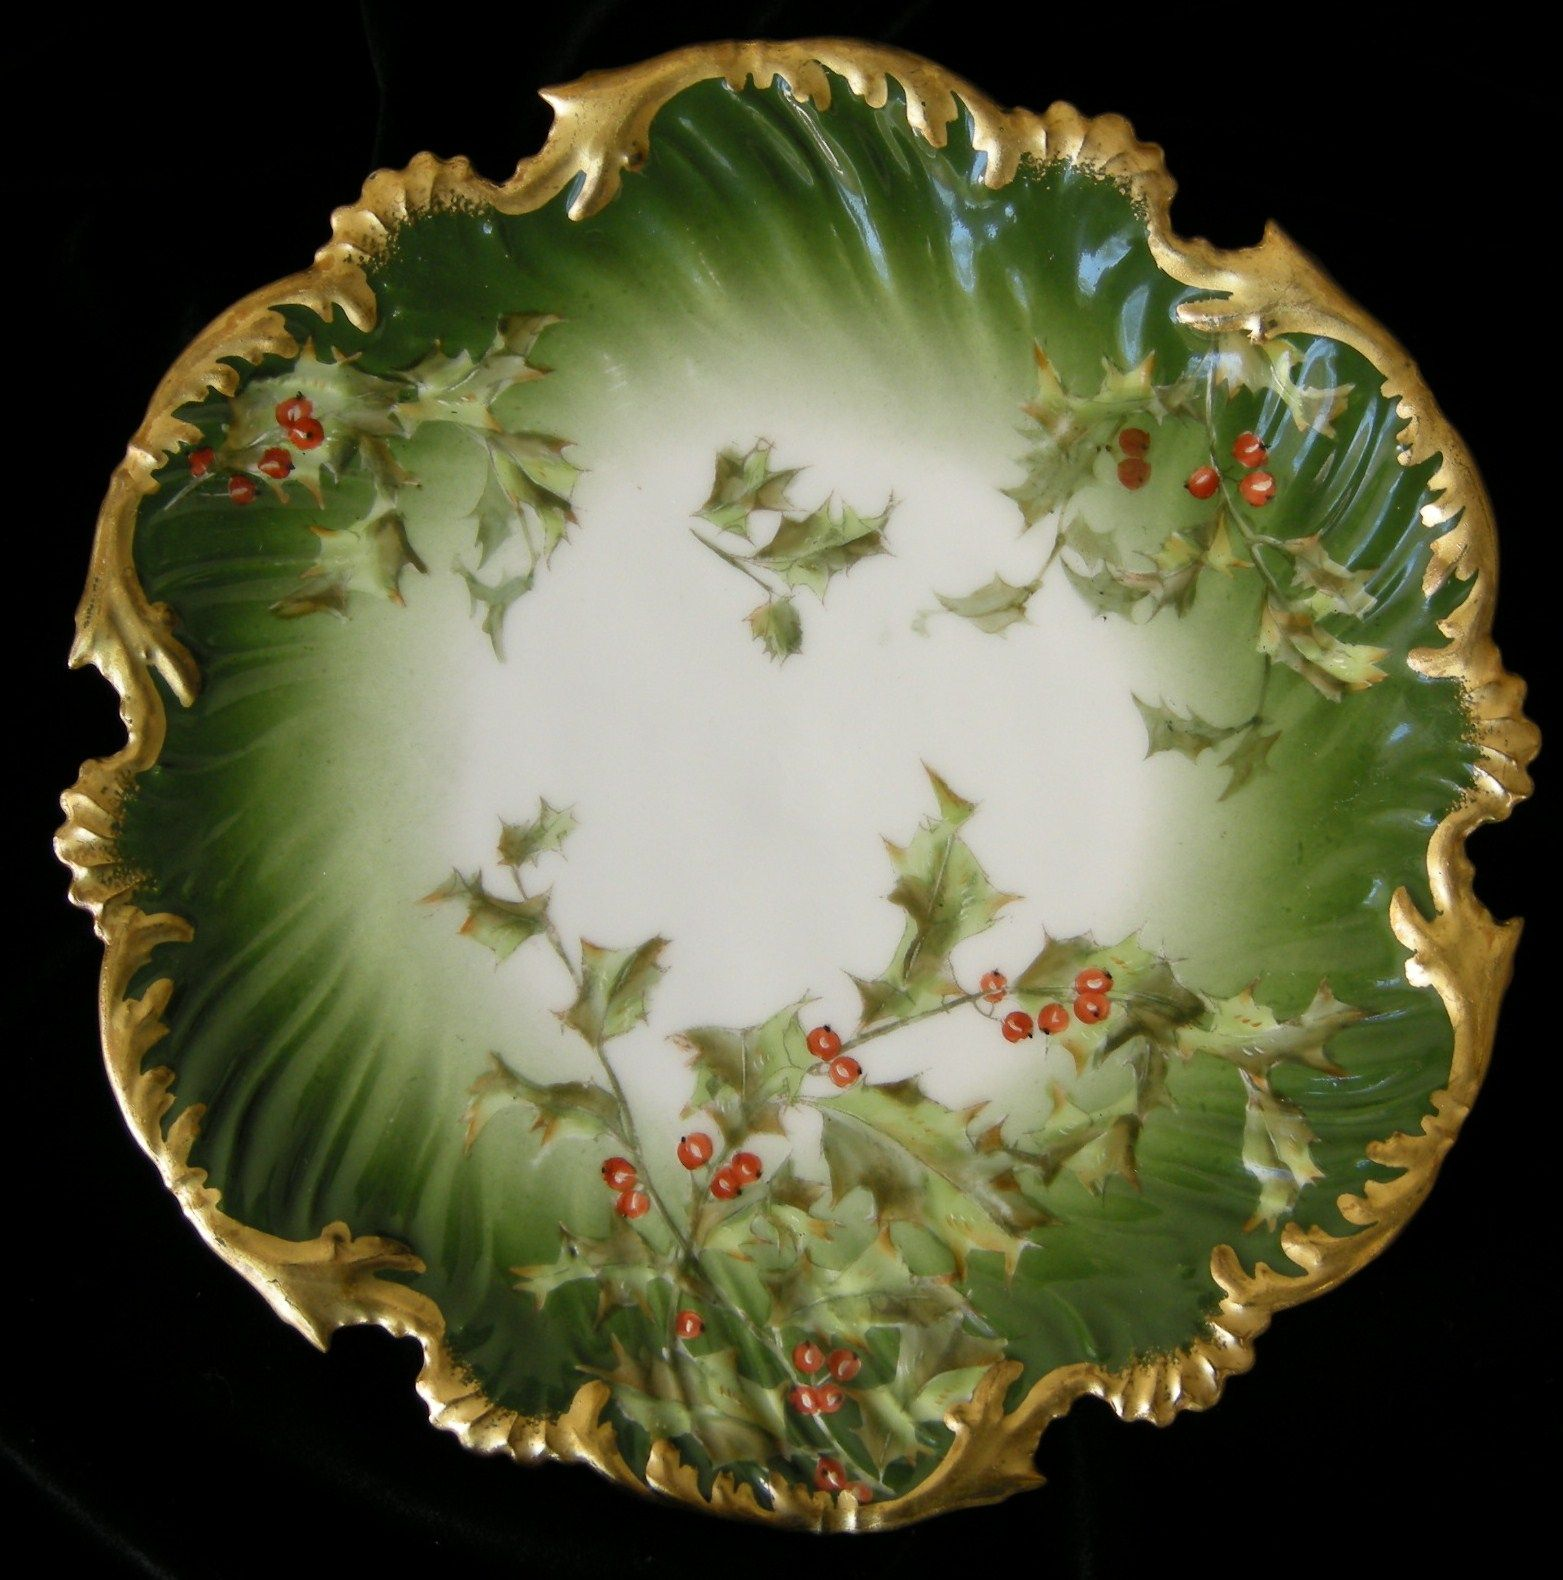 spectacular dinnerware | Limoges | Spectacular China and ...